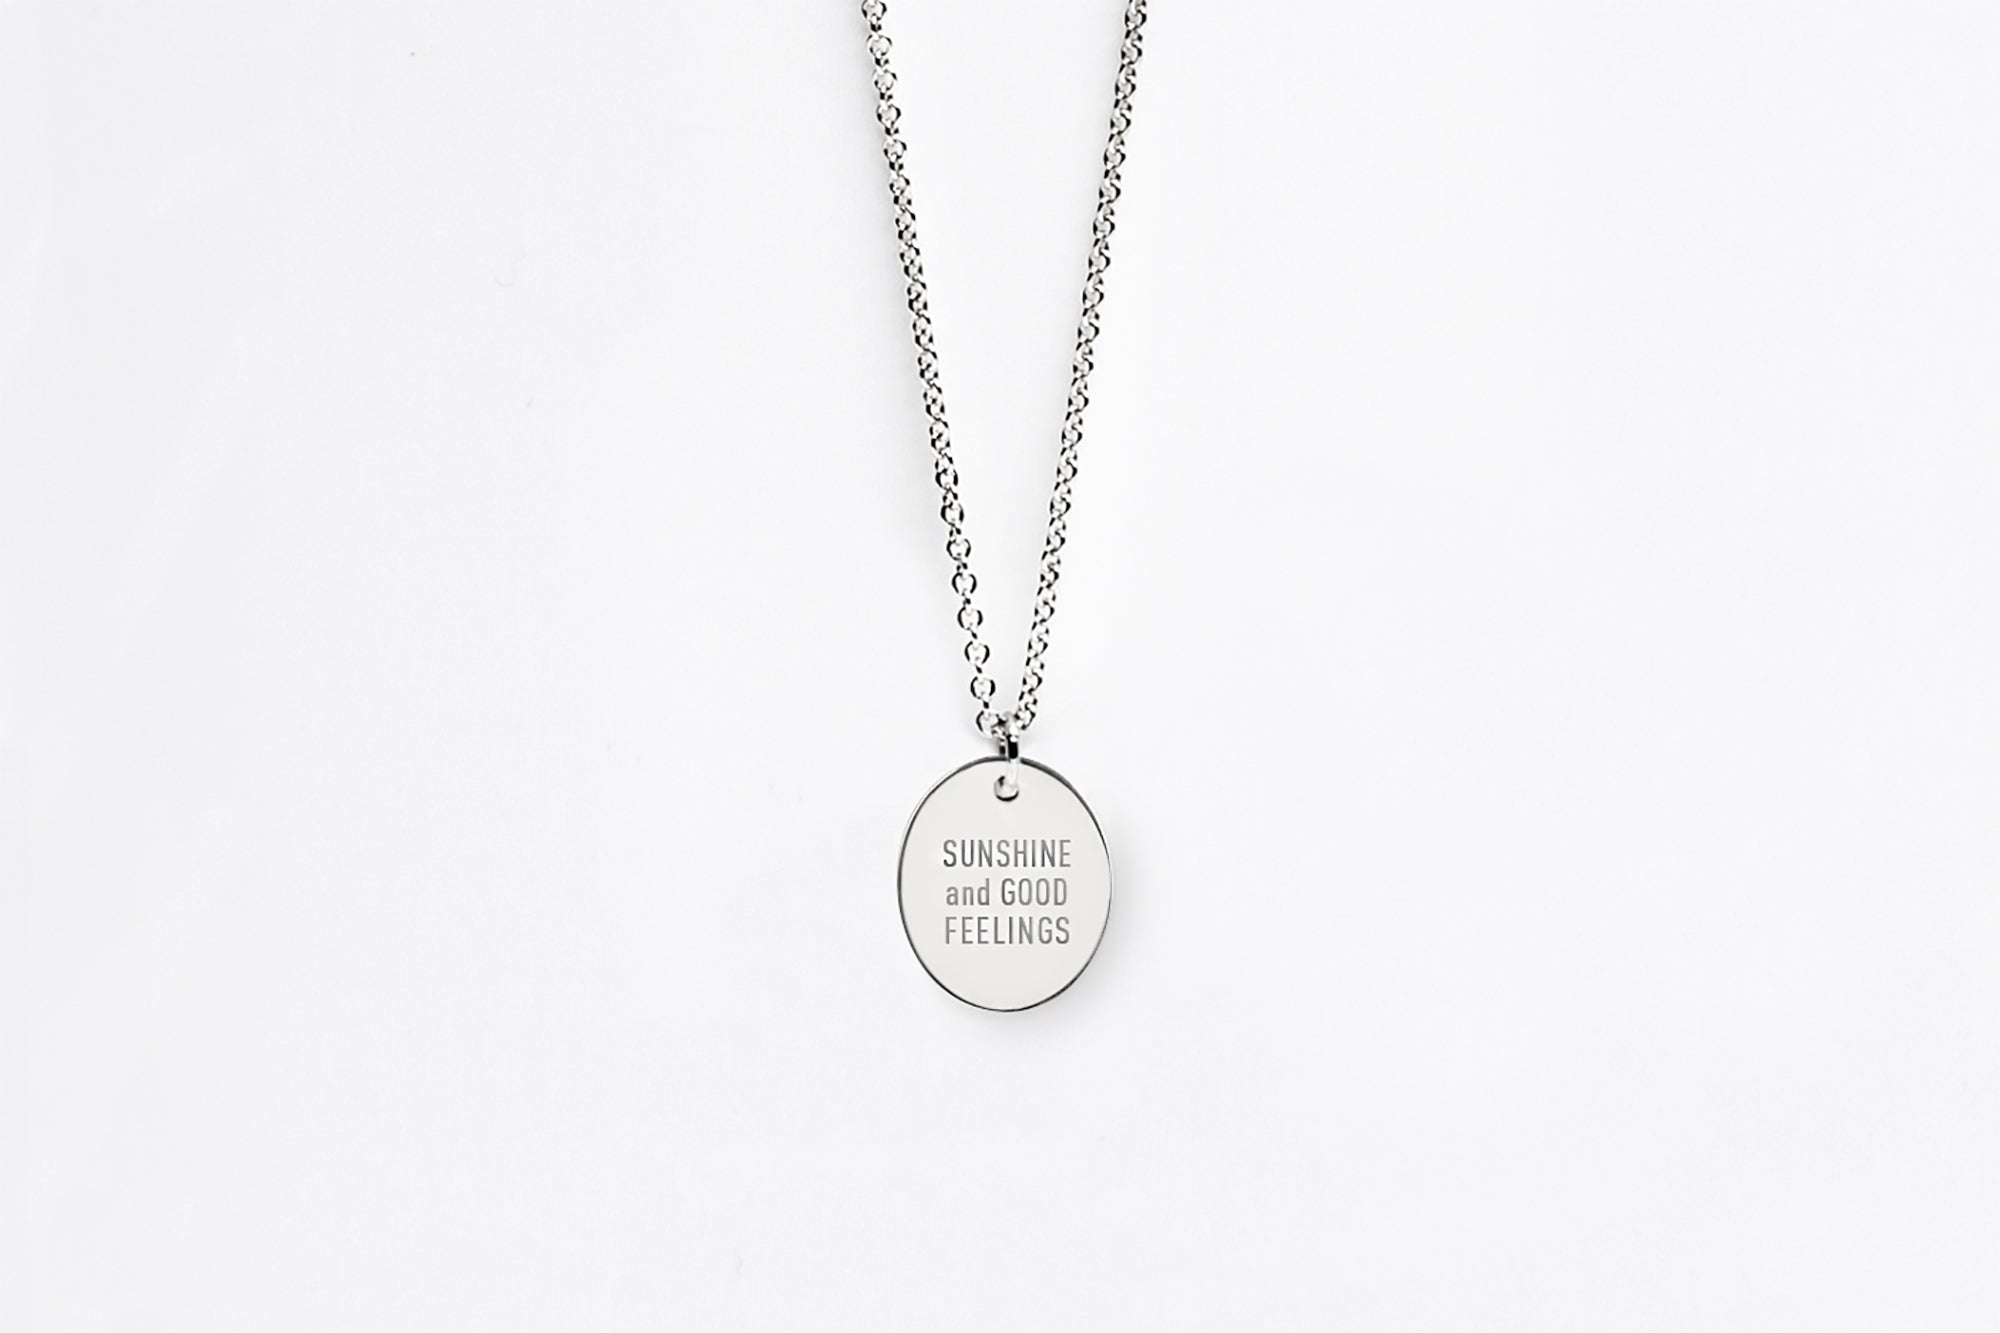 Speak Your Mind Oval Message Charm Necklace